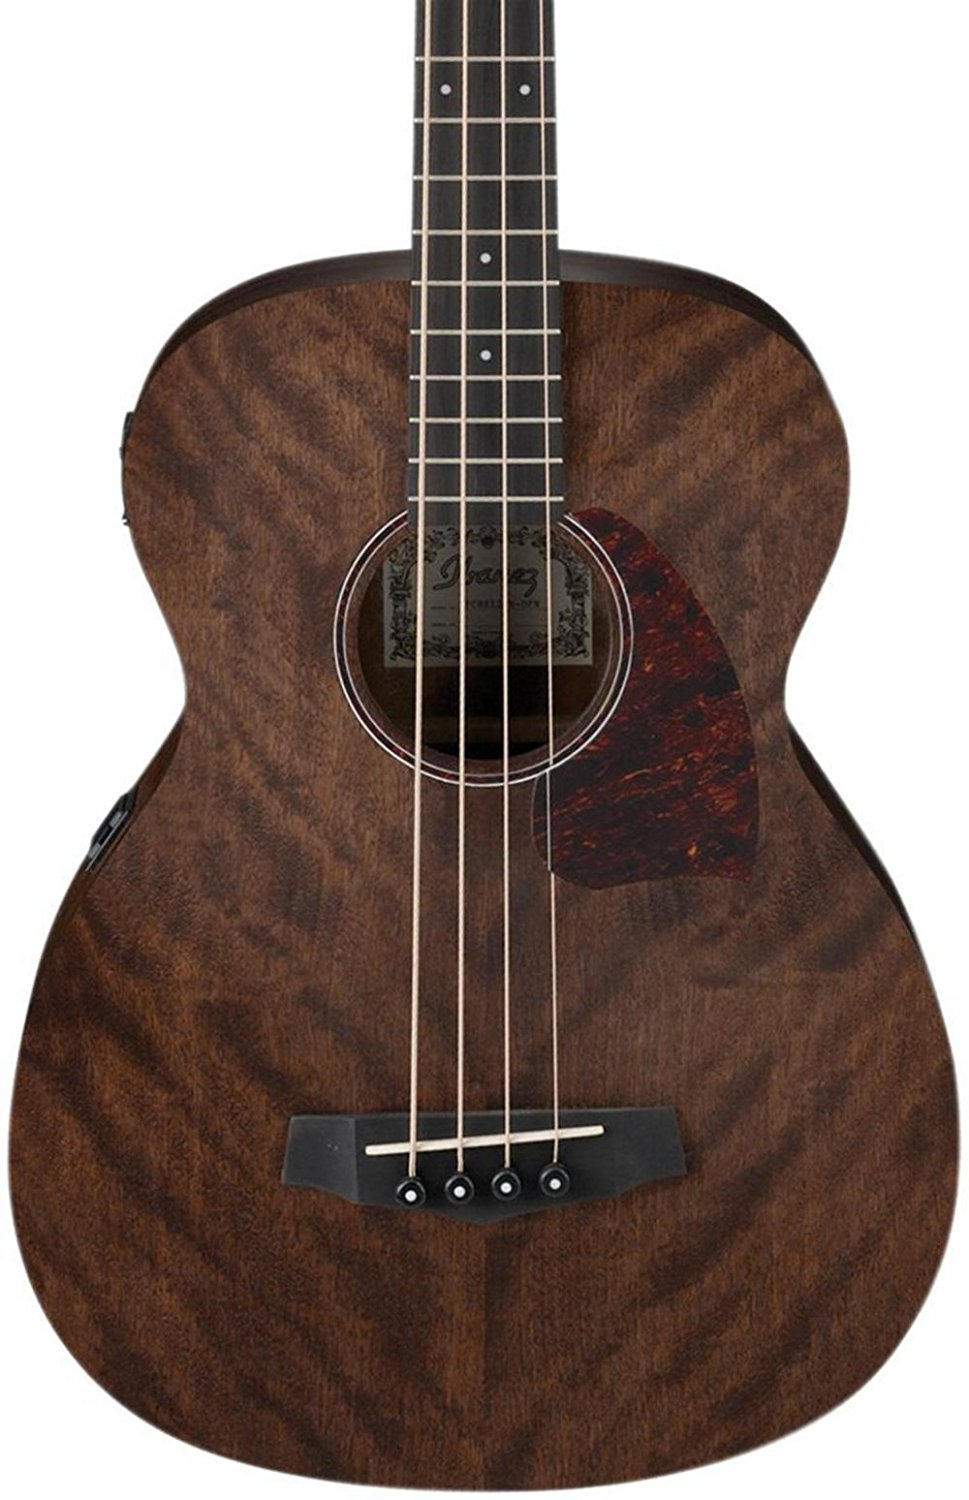 Ibanez 4-String Acoustic Bass Guitar